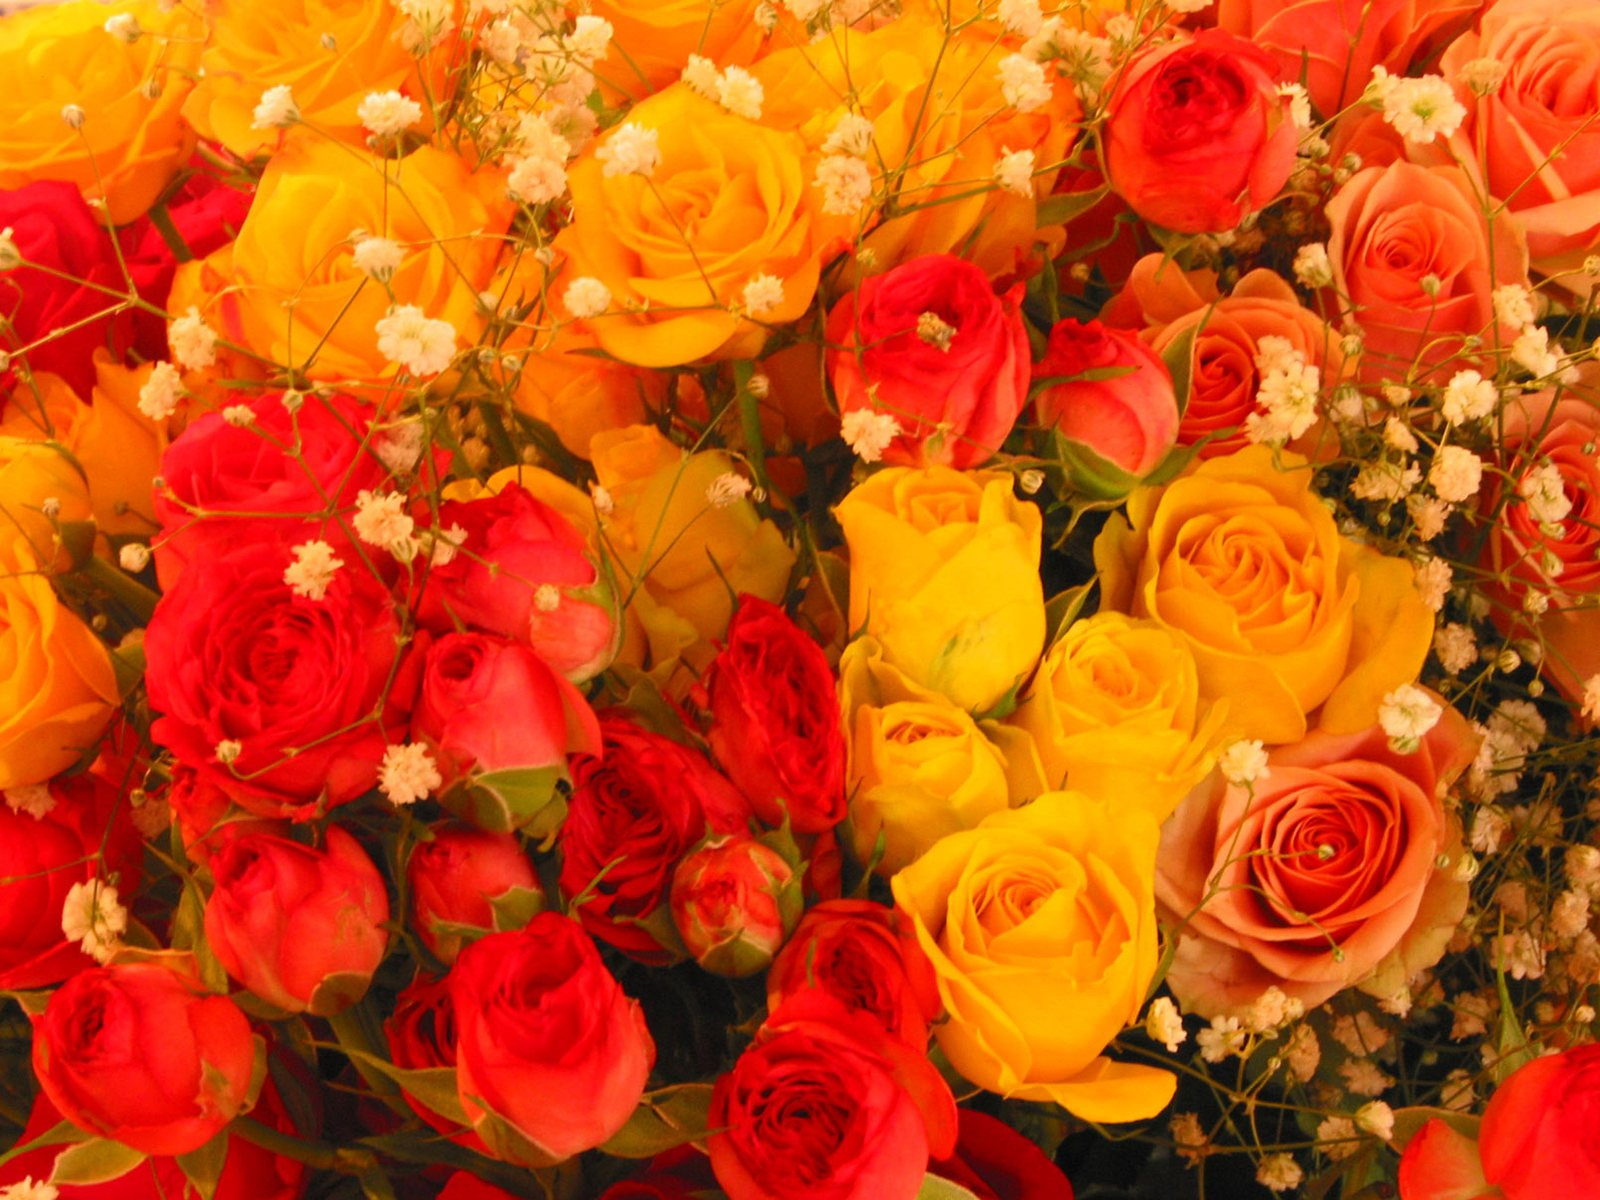 Free Rosas Amarelas E Vermelhas Stock Photo Freeimagescom